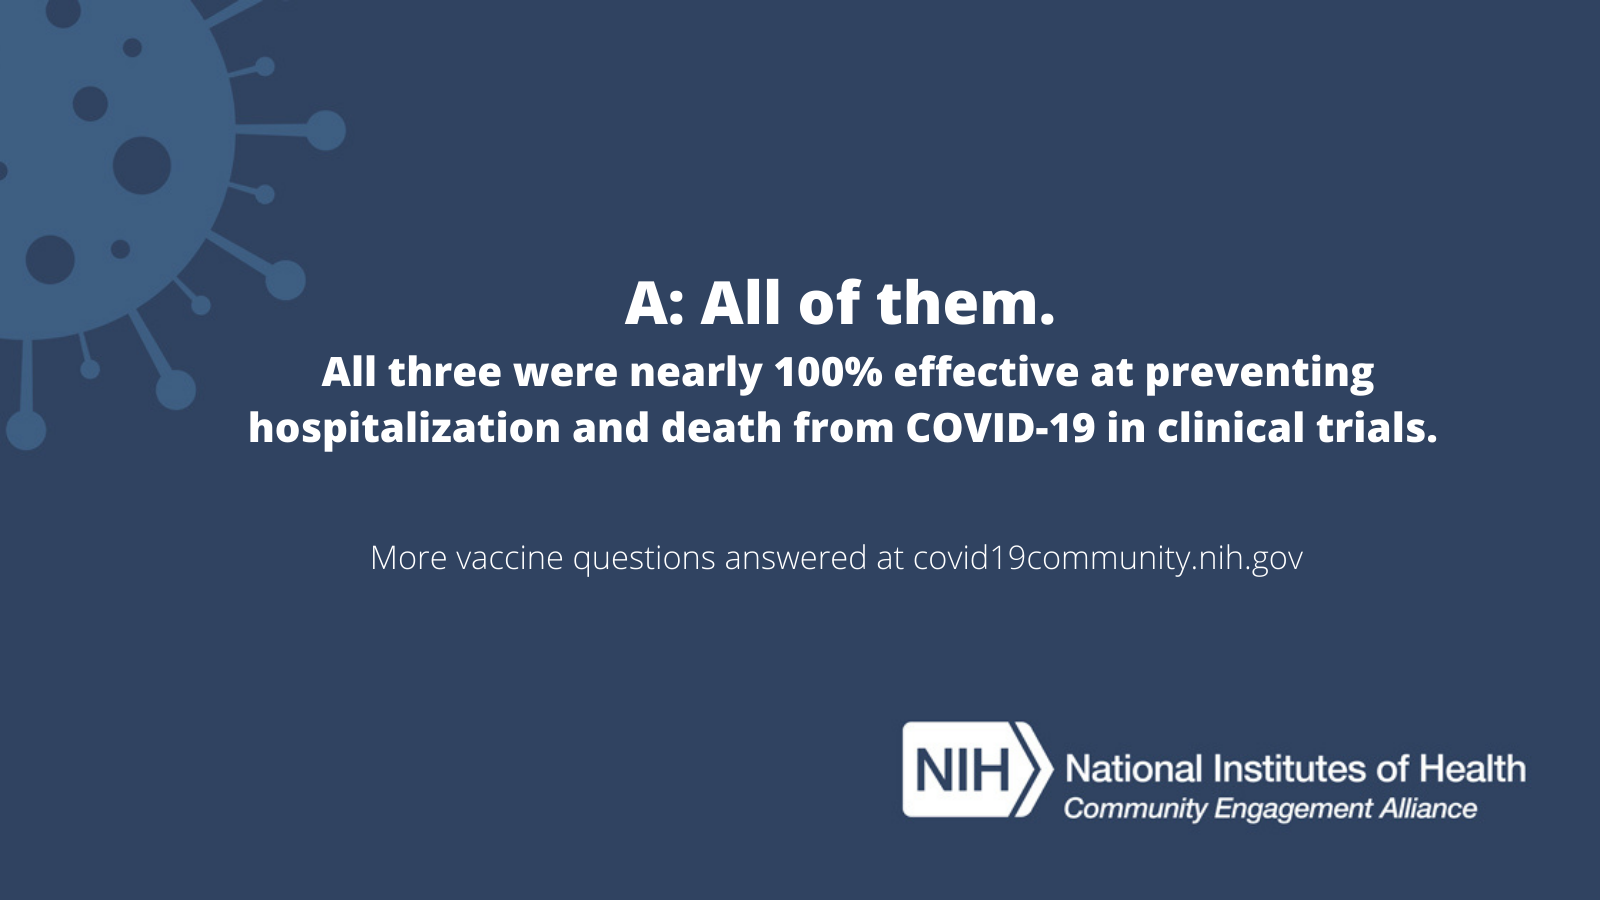 A: All of them. All three were nearly 100% effective at preventing hospitalization and death from COVID-19 in clinical trials. More vaccine questions answered at covid19community.nih.gov